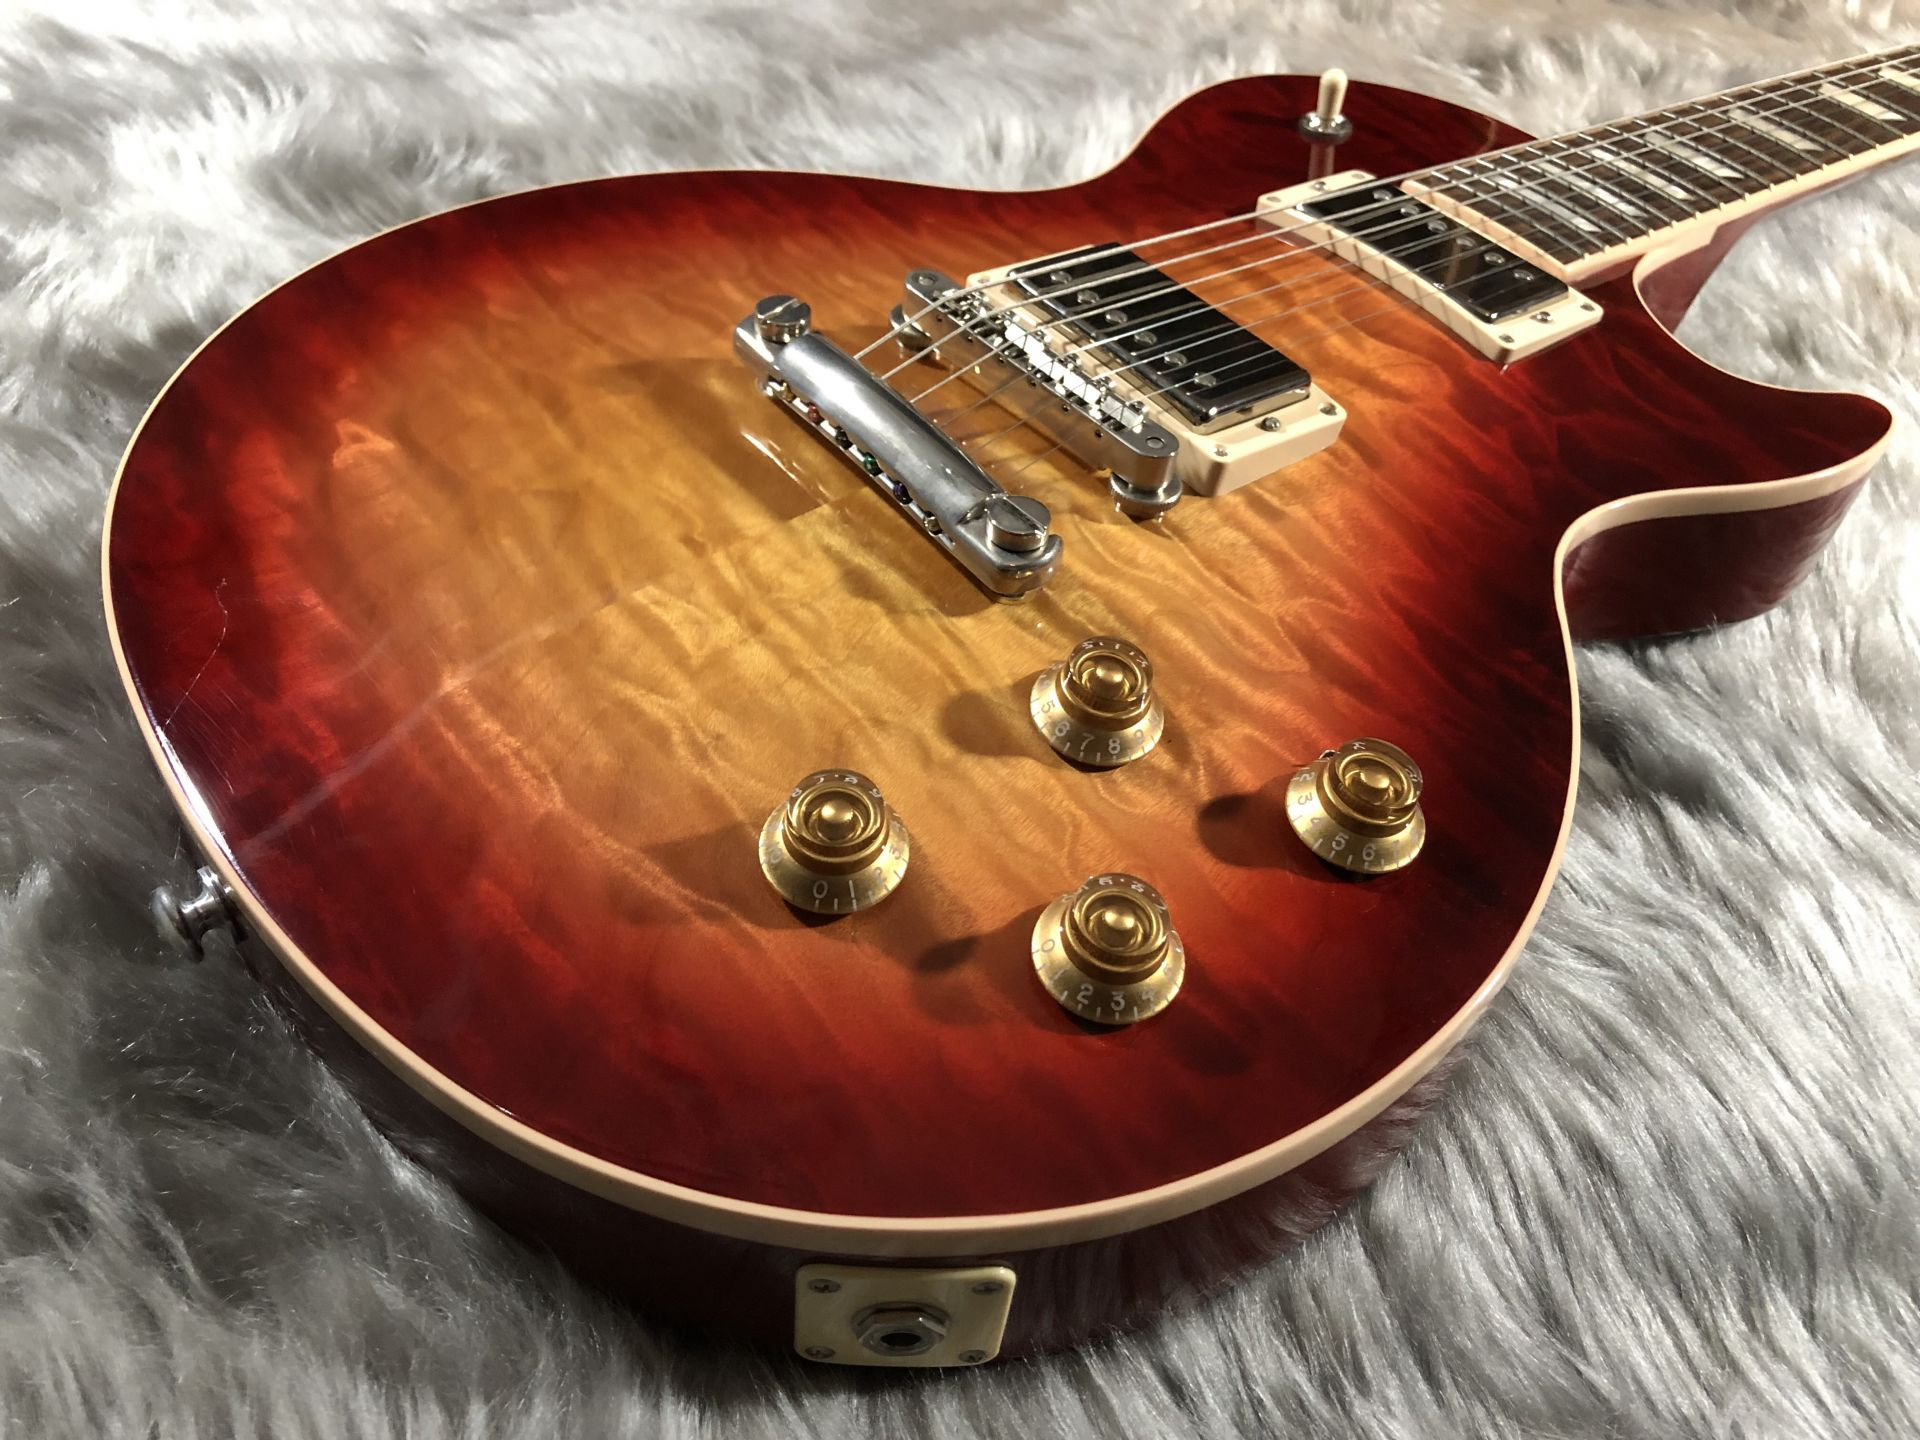 Les Paul Traditional 2017 Quiltedのボディトップ-アップ画像